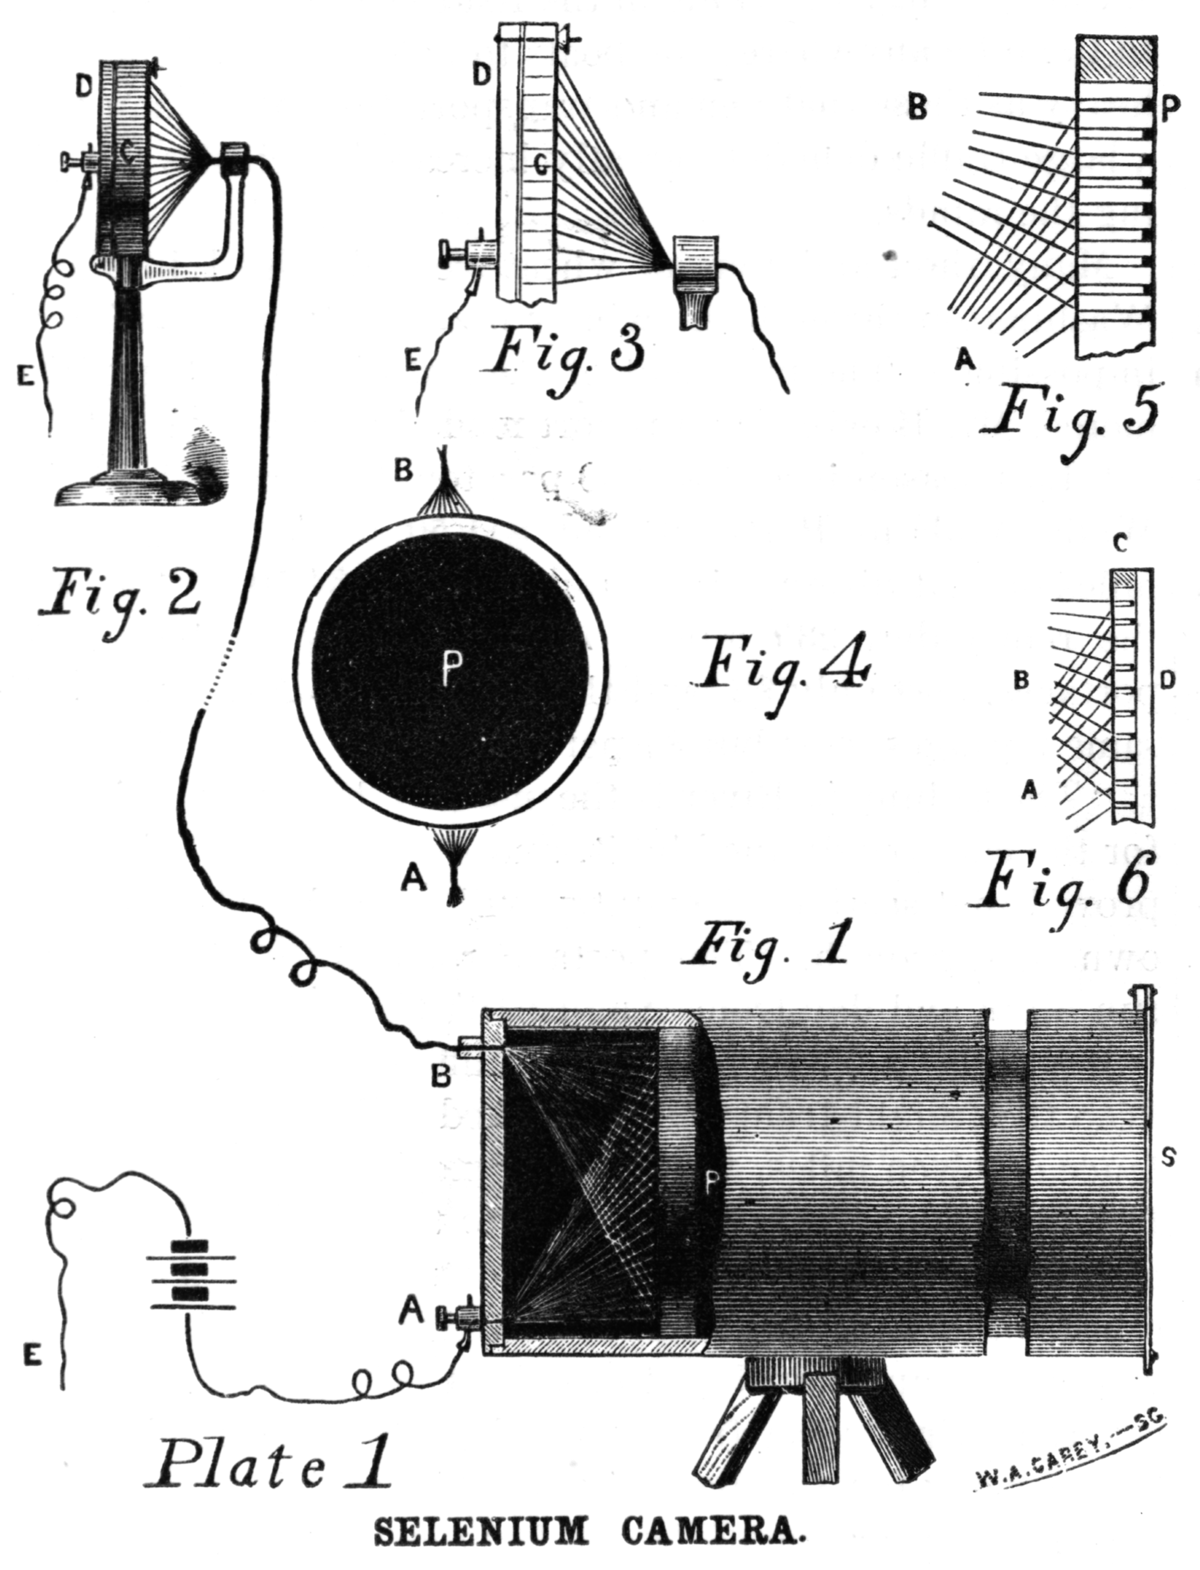 1200px Selenium_camera_by_George_R._Carey_1880 george r carey wikipedia came photocell wiring diagram at virtualis.co